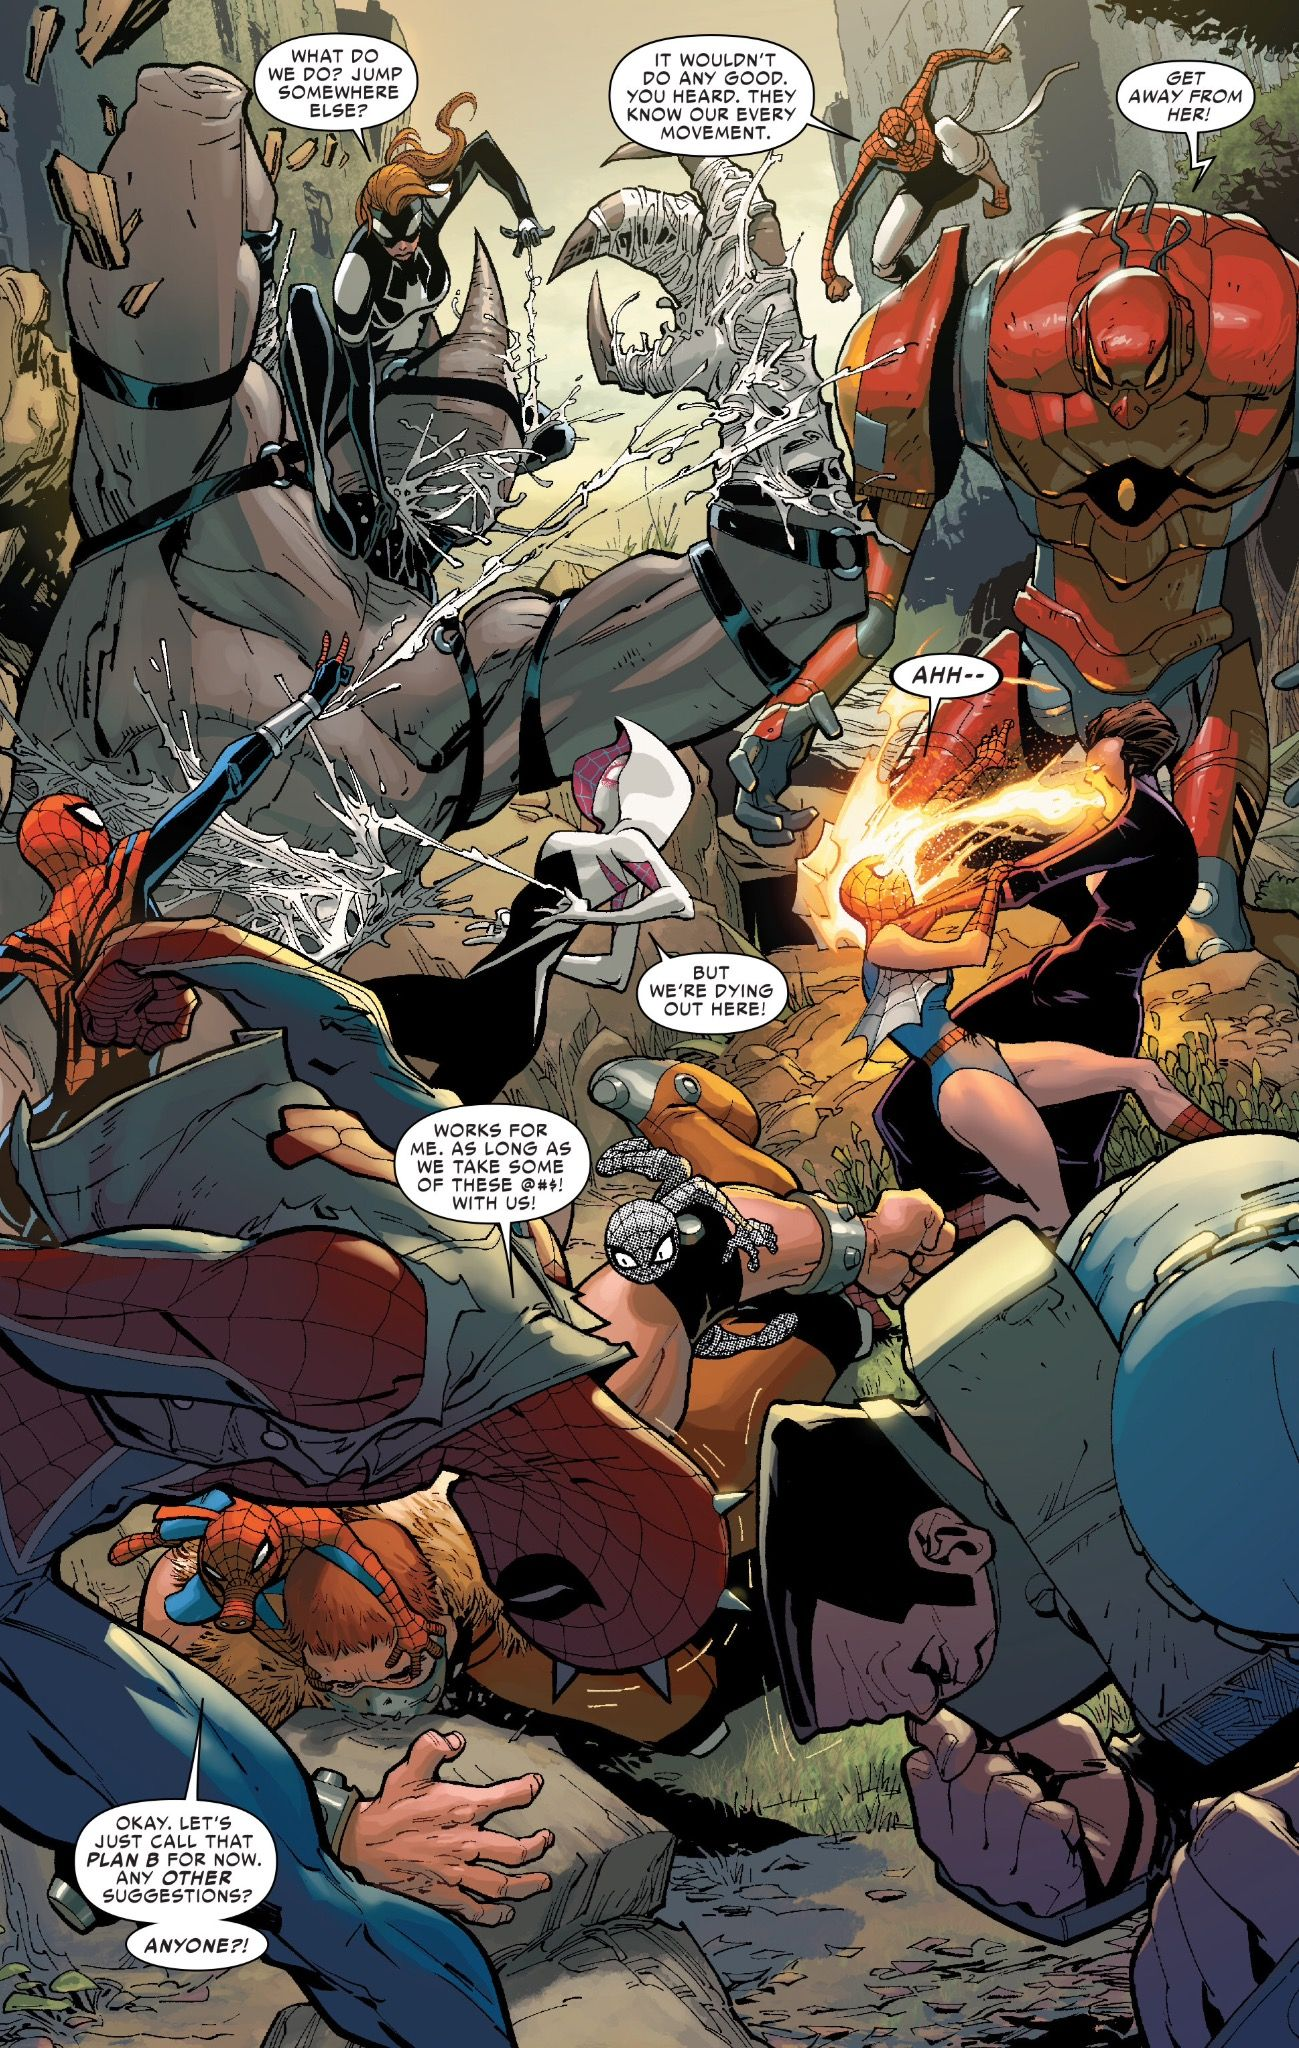 A big battle sequence in Amazing Spider-Man #12 (vol. 3)